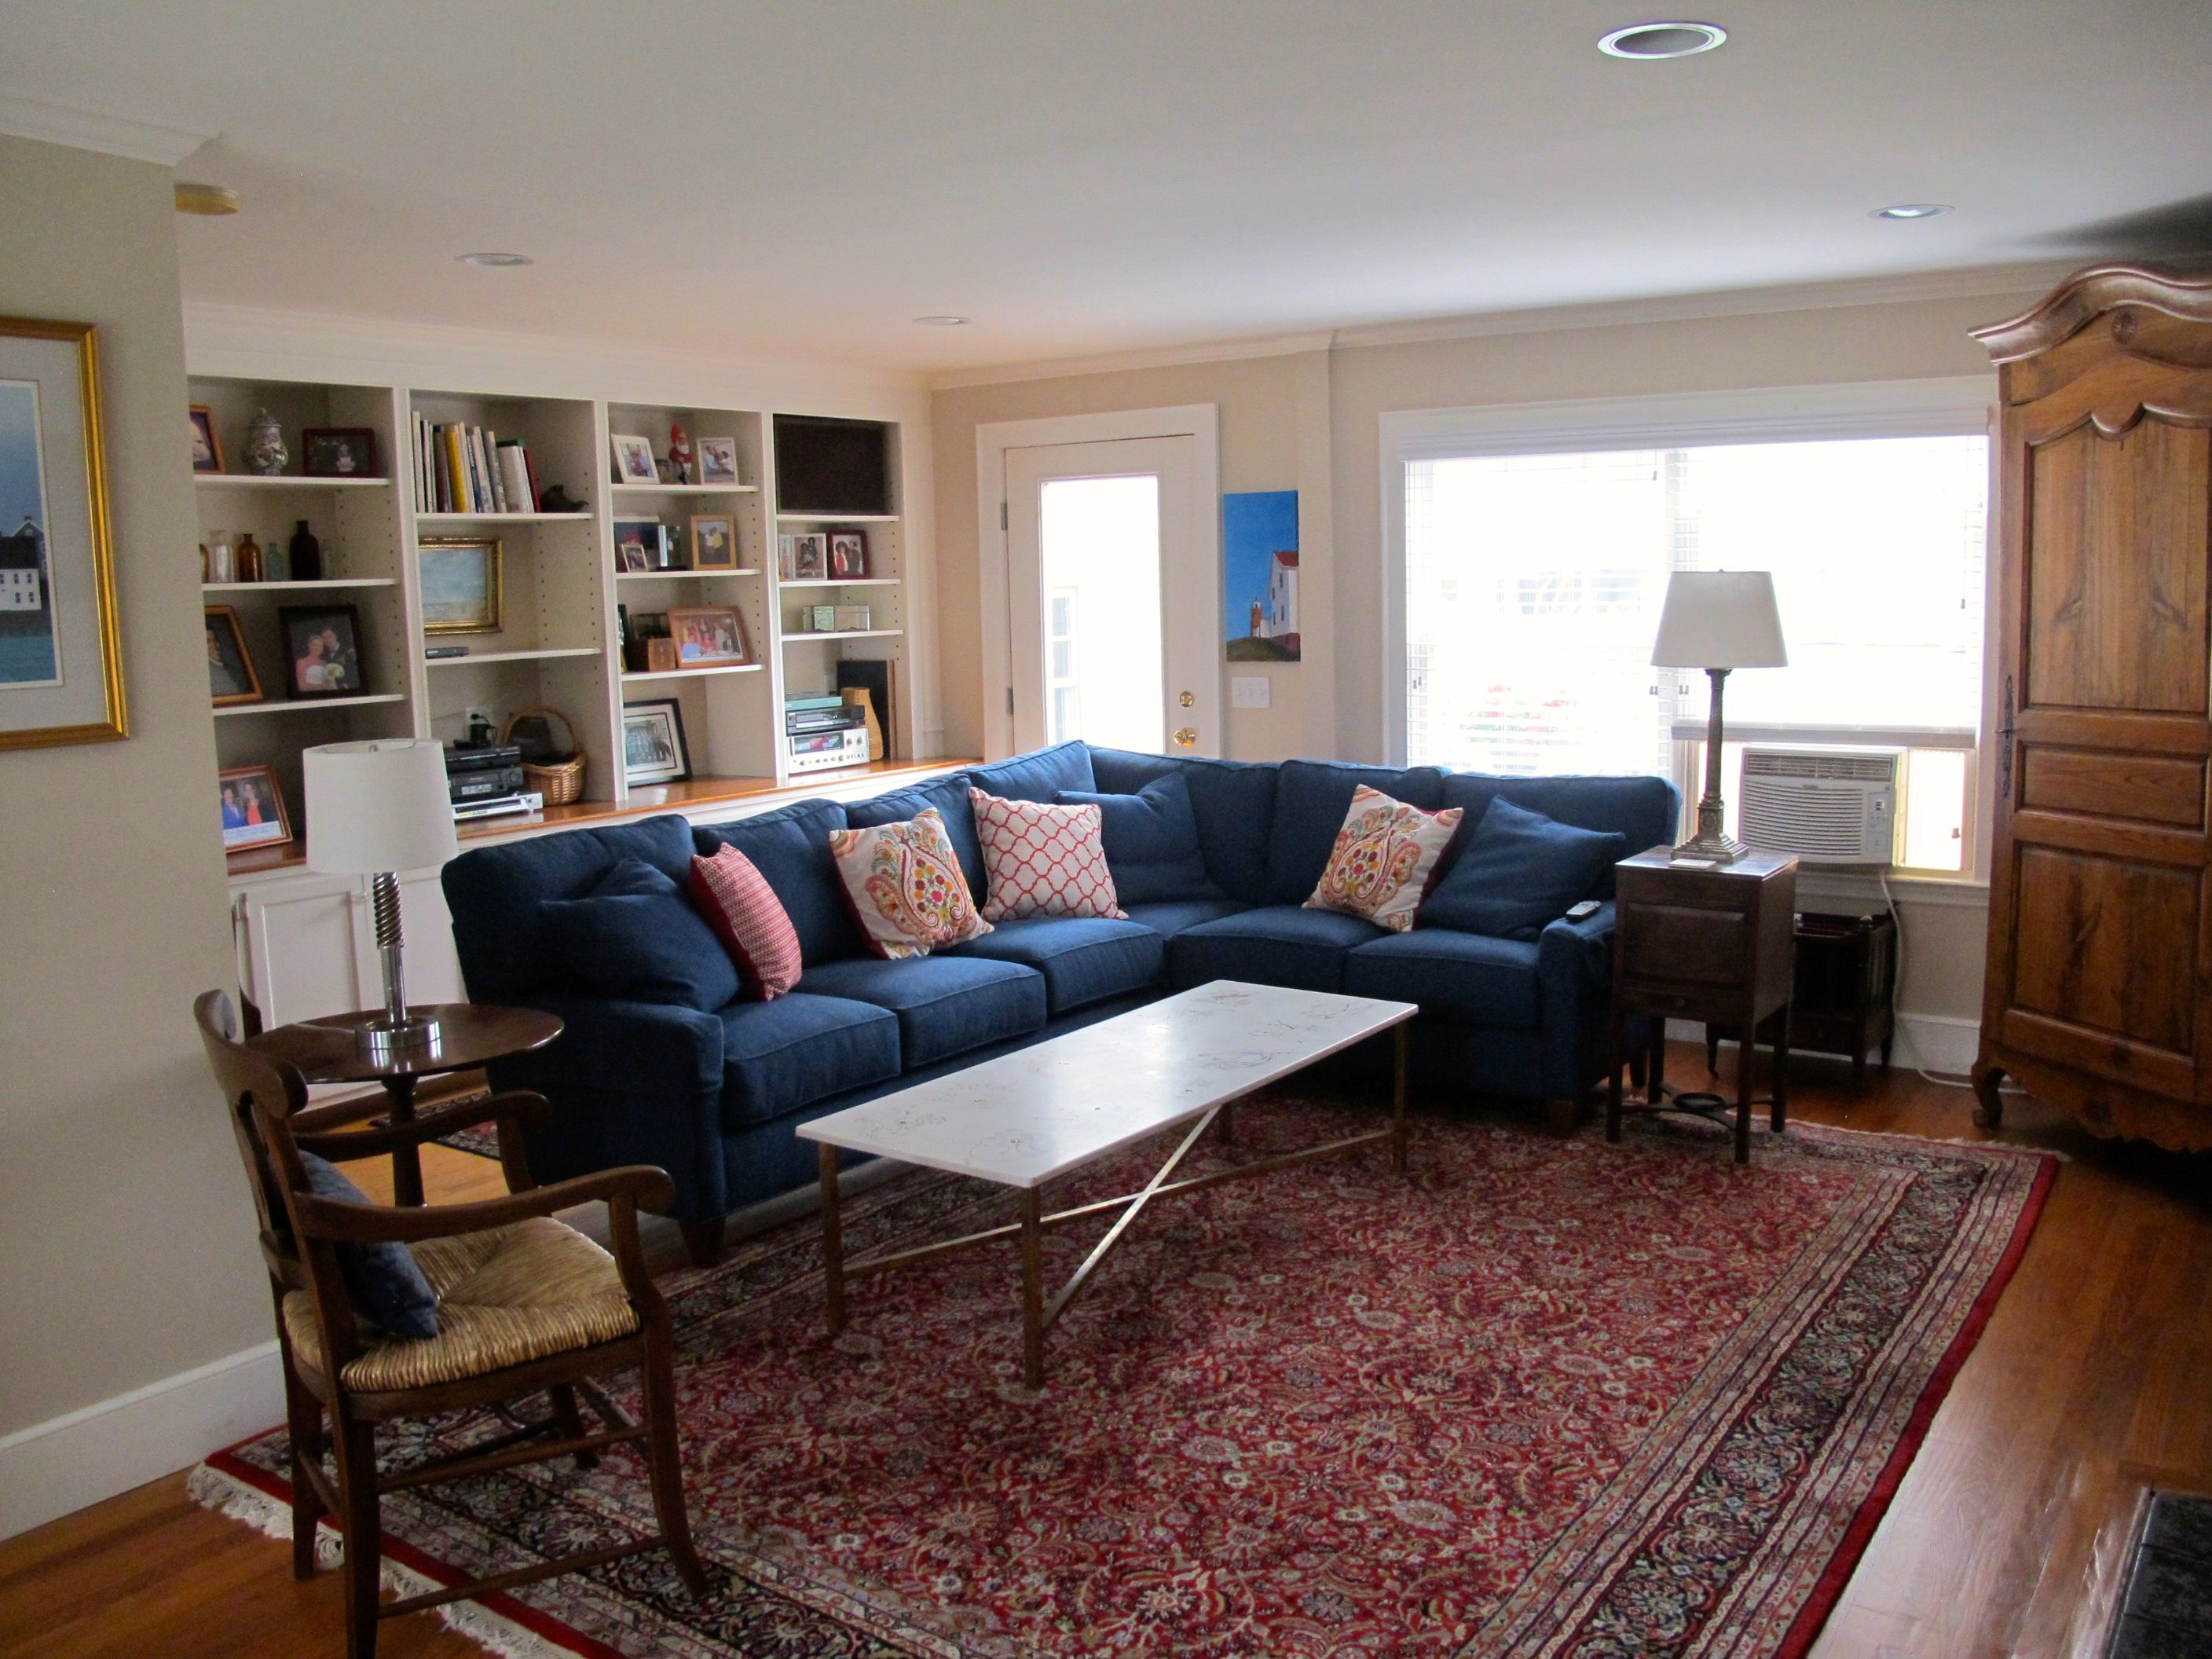 Pin On Living Room Re Do Ideas Sectional Sofa Bookcases Persian Rug #royal #blue #sectional #living #room